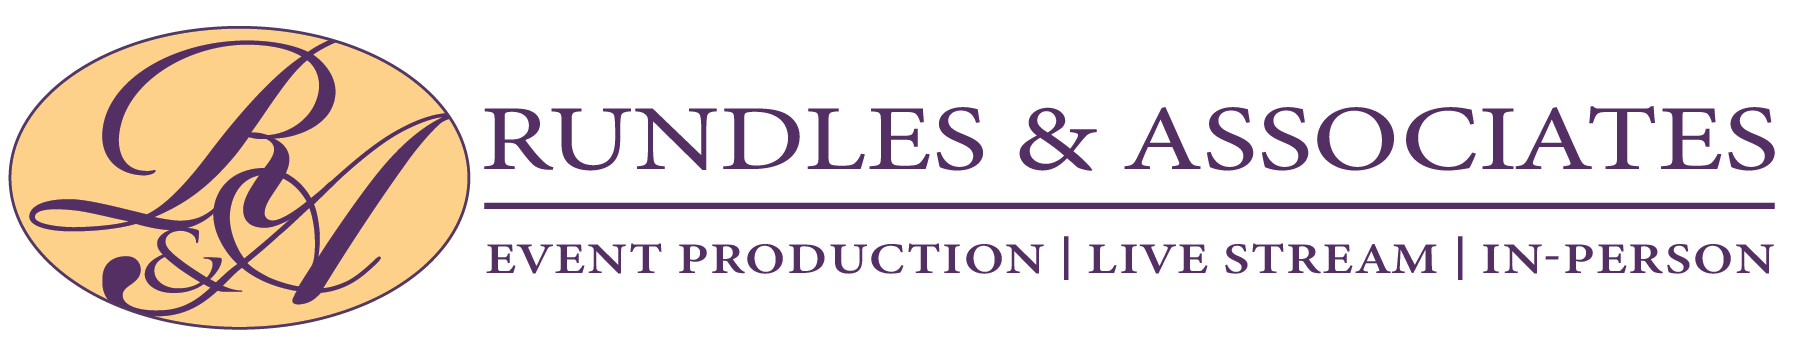 Rundles and Associates